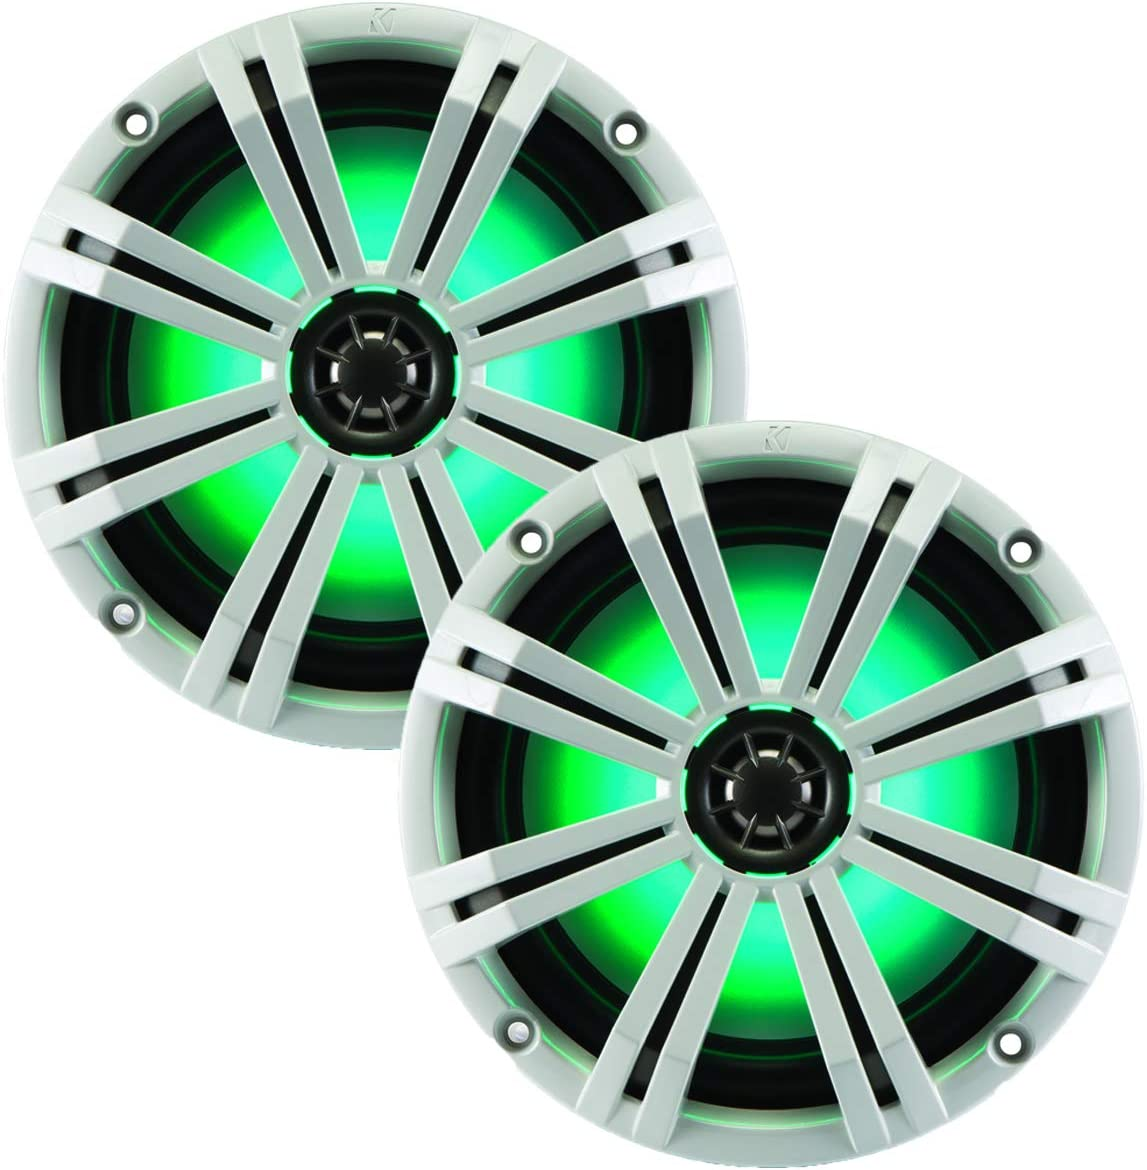 """Kicker KM8 8-INCH (200mm) Marine Coaxial Speakerswith 1"""" tweeters,LED Charcoal and White Grilles,4-OHM"""